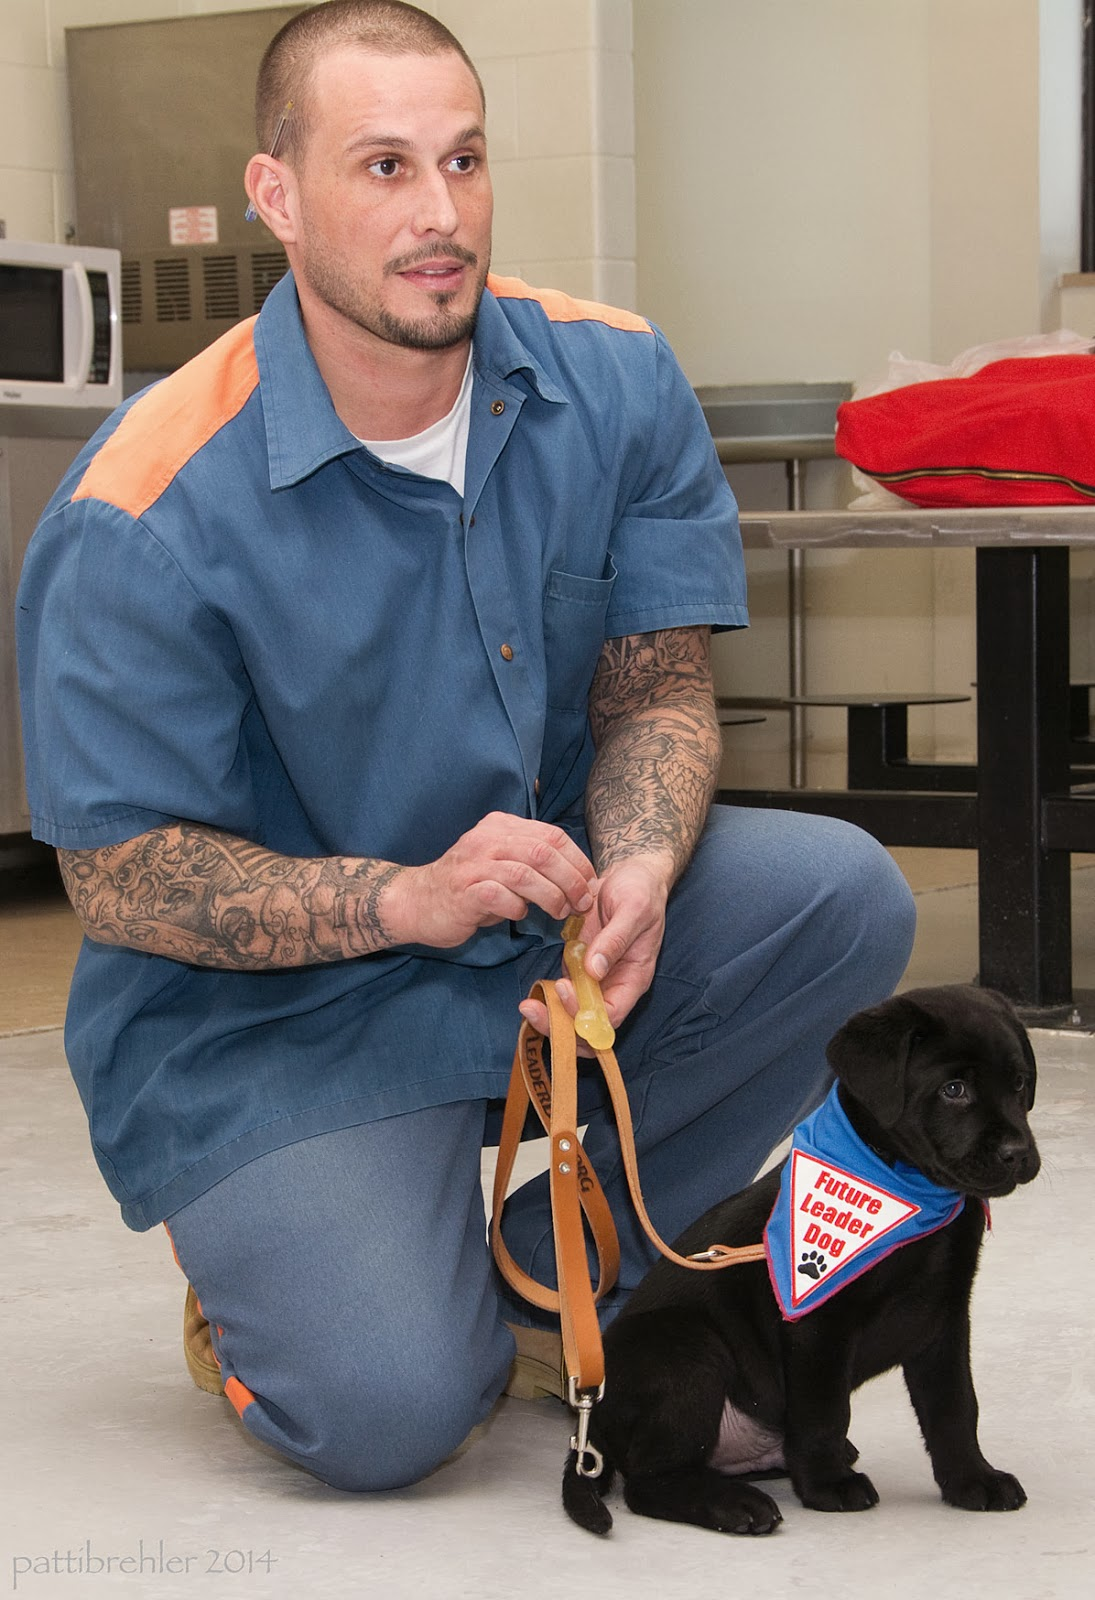 A young man dressed in the prison uniform of blue shirt and blue pants with orange stripes on the shoulders and legs is holding a brown leash and squatting behind a small black lab puppy. The puppy is wearing a blue bandana with a white triangle patch with red letters that say Future Leader Dog and a black paw print. The man has tattoos down both arms.